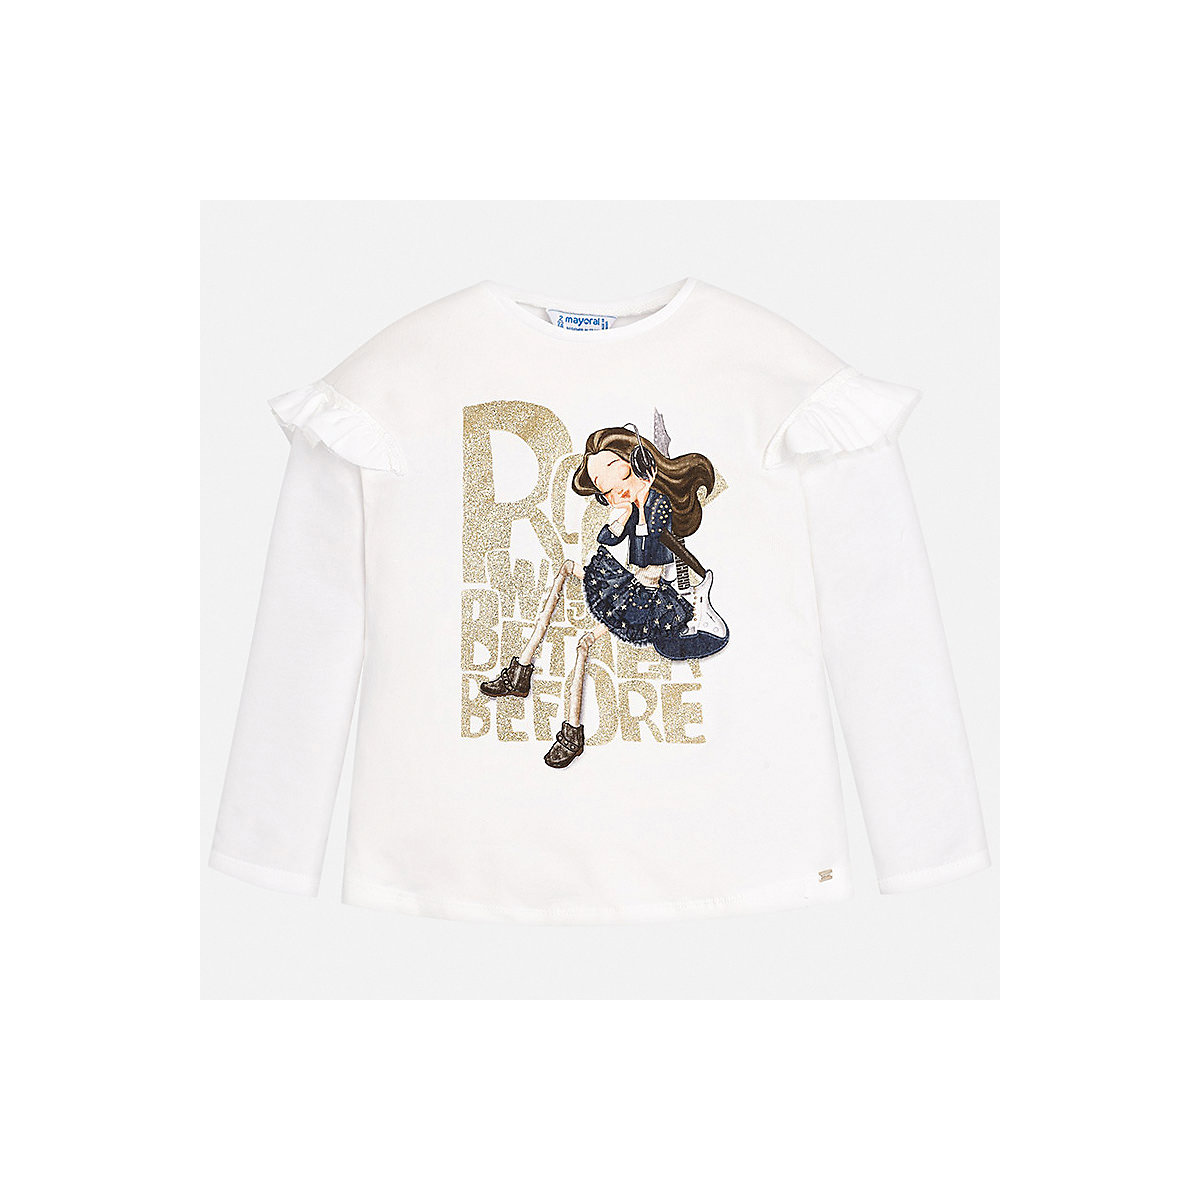 MAYORAL Blouses & Shirts 8849260 Girls Cotton  clothes baby boy children child wear mayoral blouses